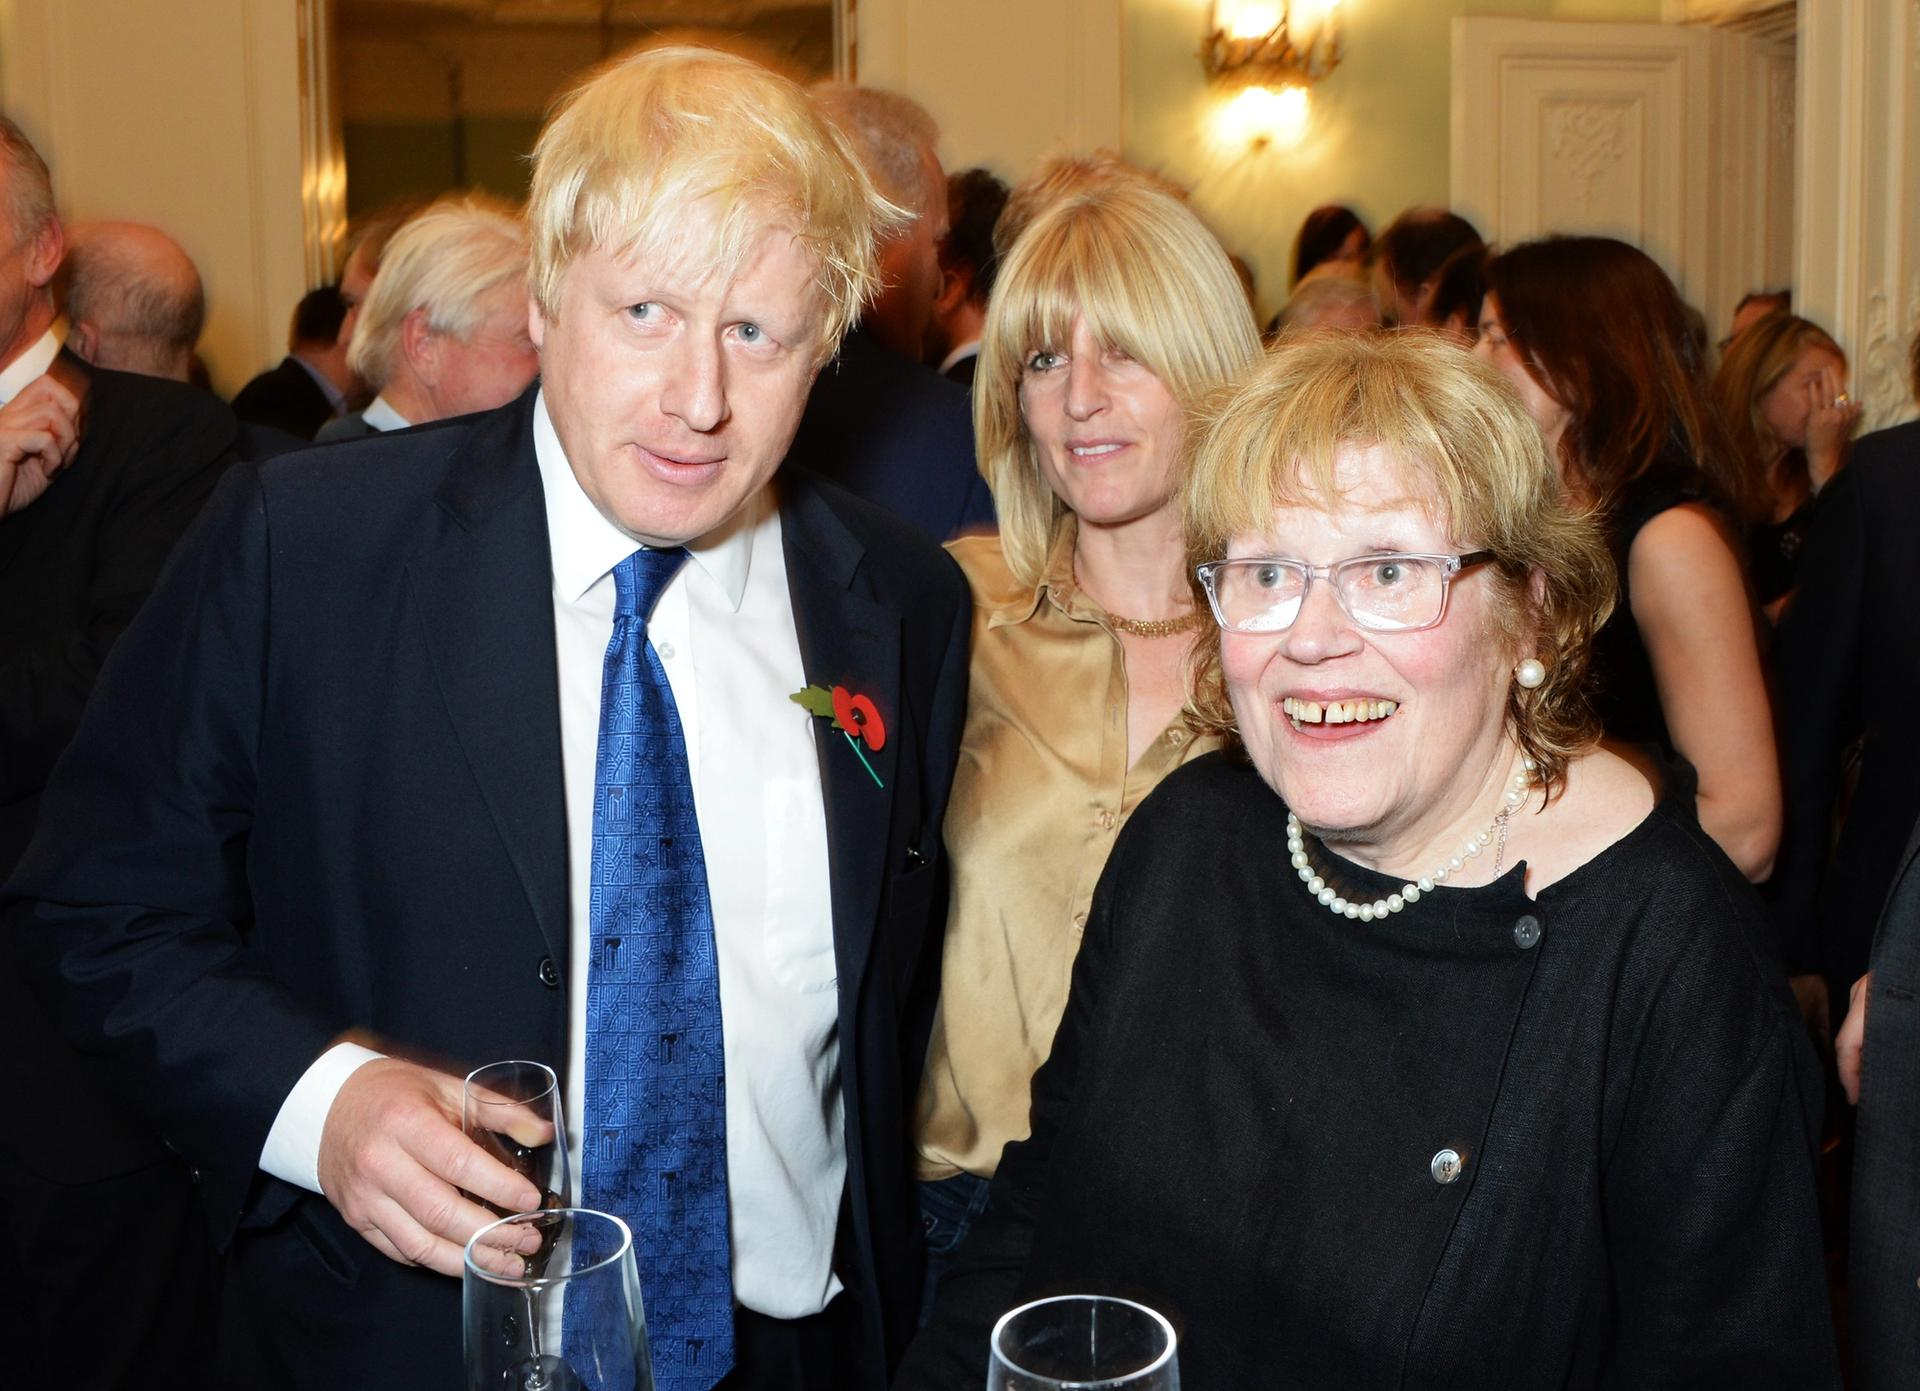 Boris Johnson's mother Charlotte Wahl is an Expressionist artist © David M. Benett/Getty Images